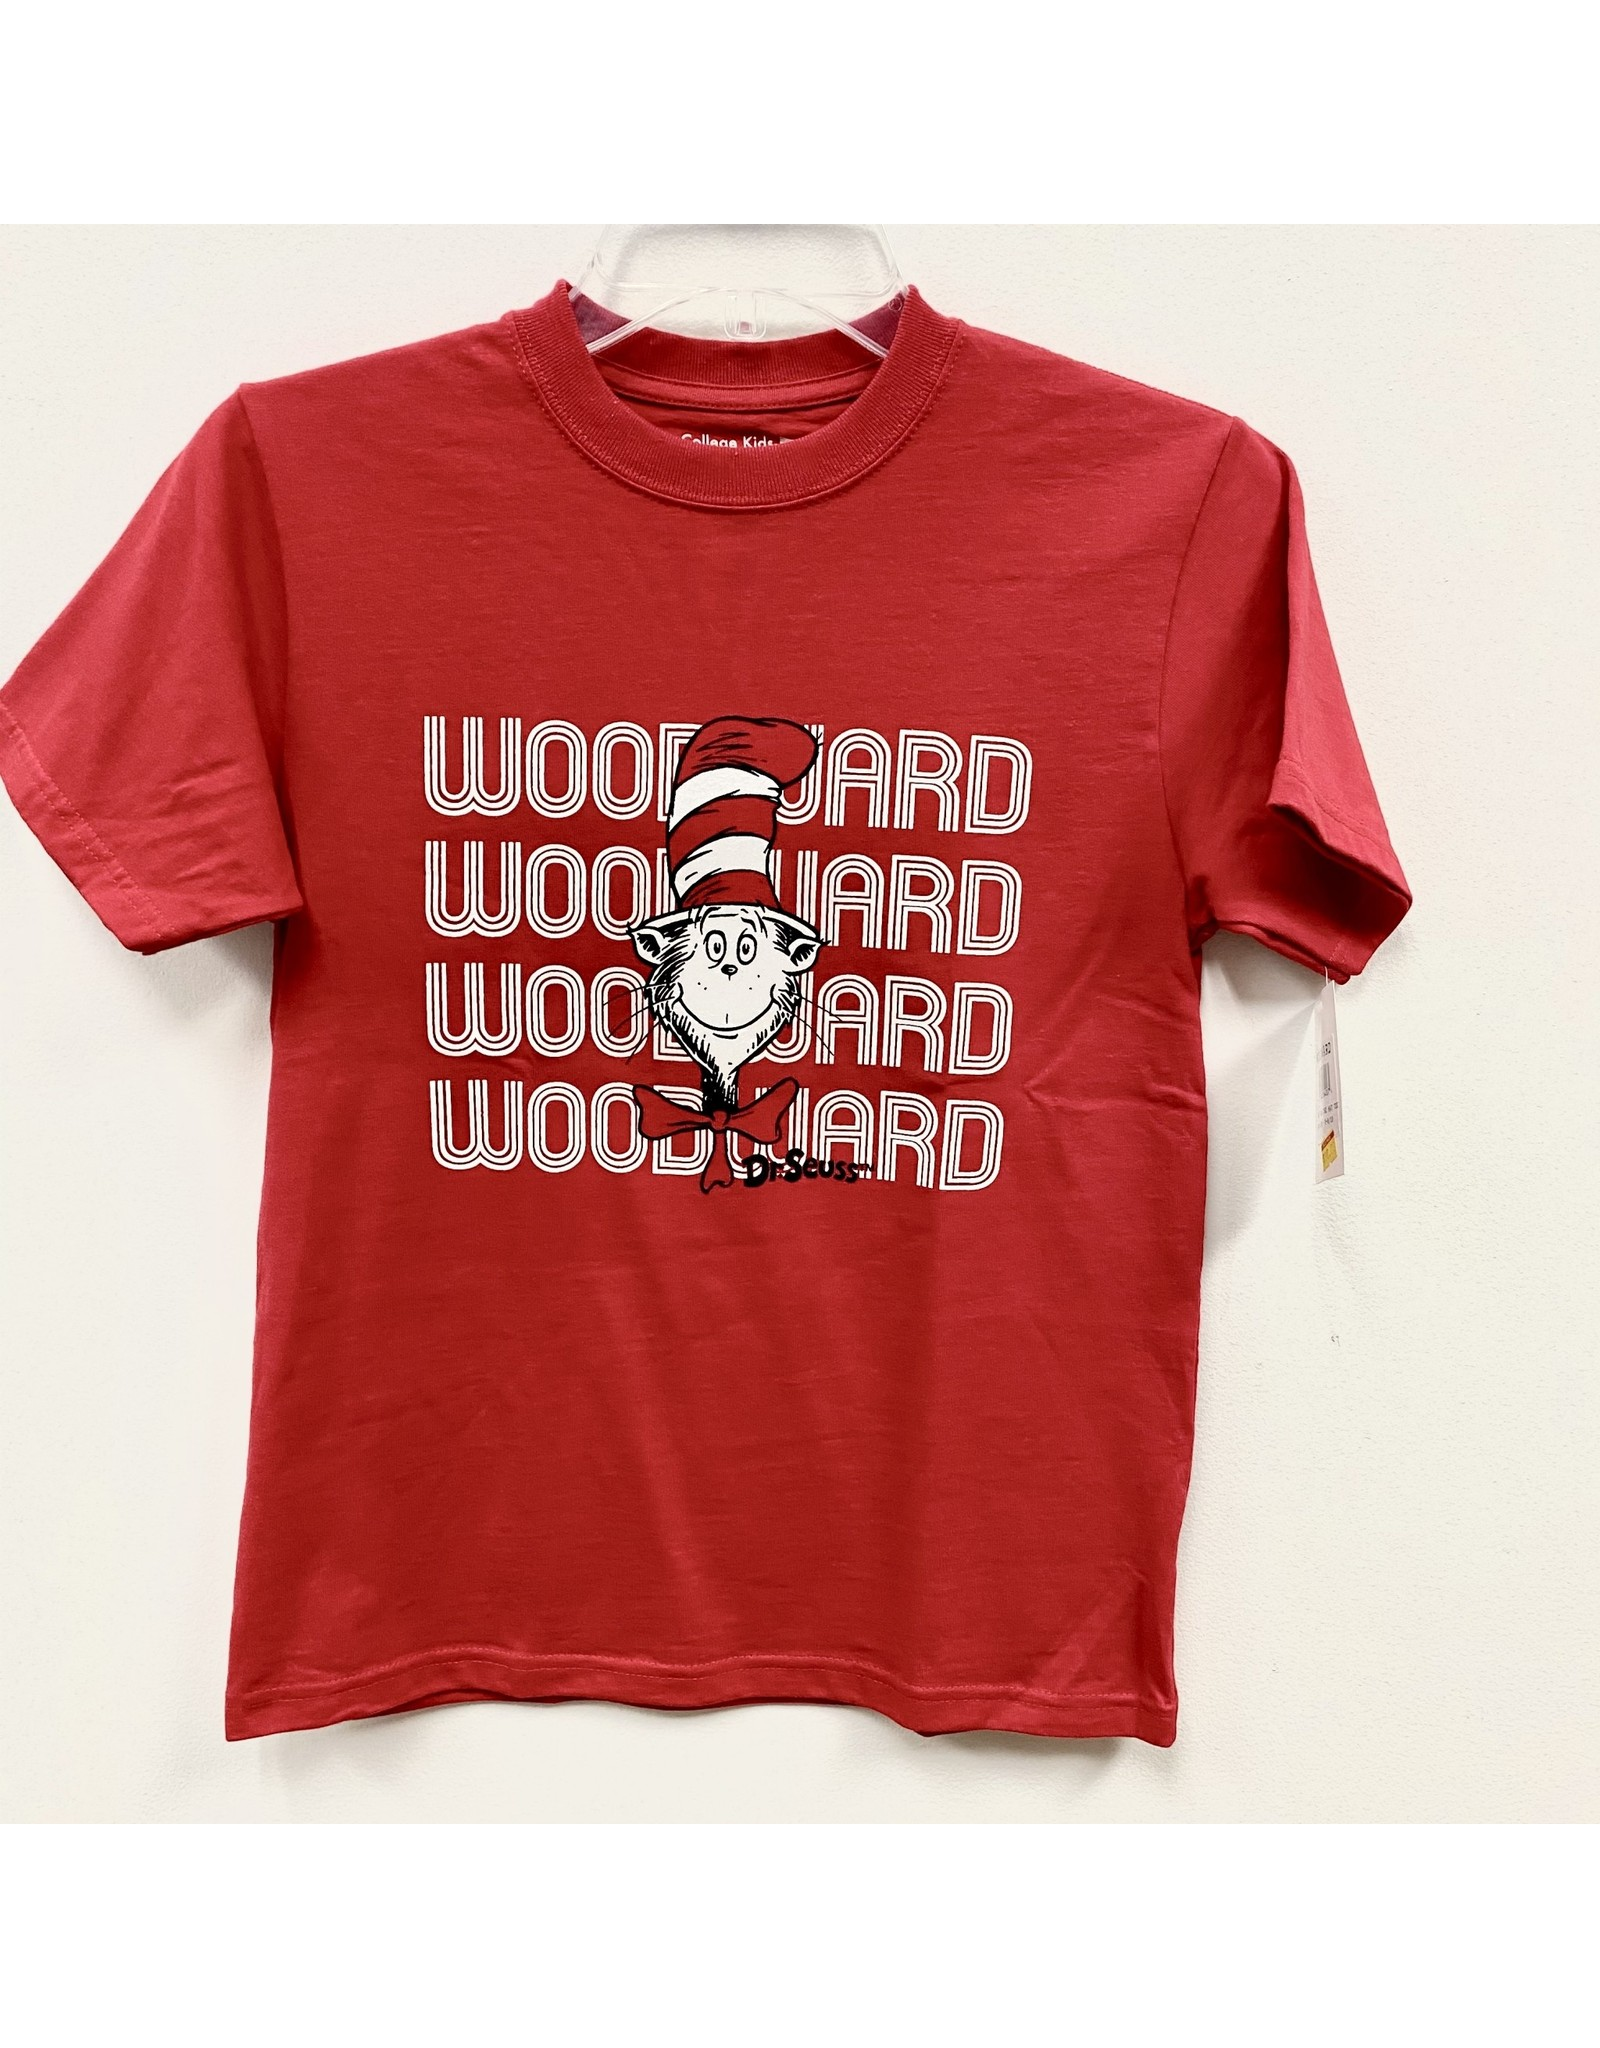 College Kids Sale Youth Cat In The Hat Woodward SS T Shirt